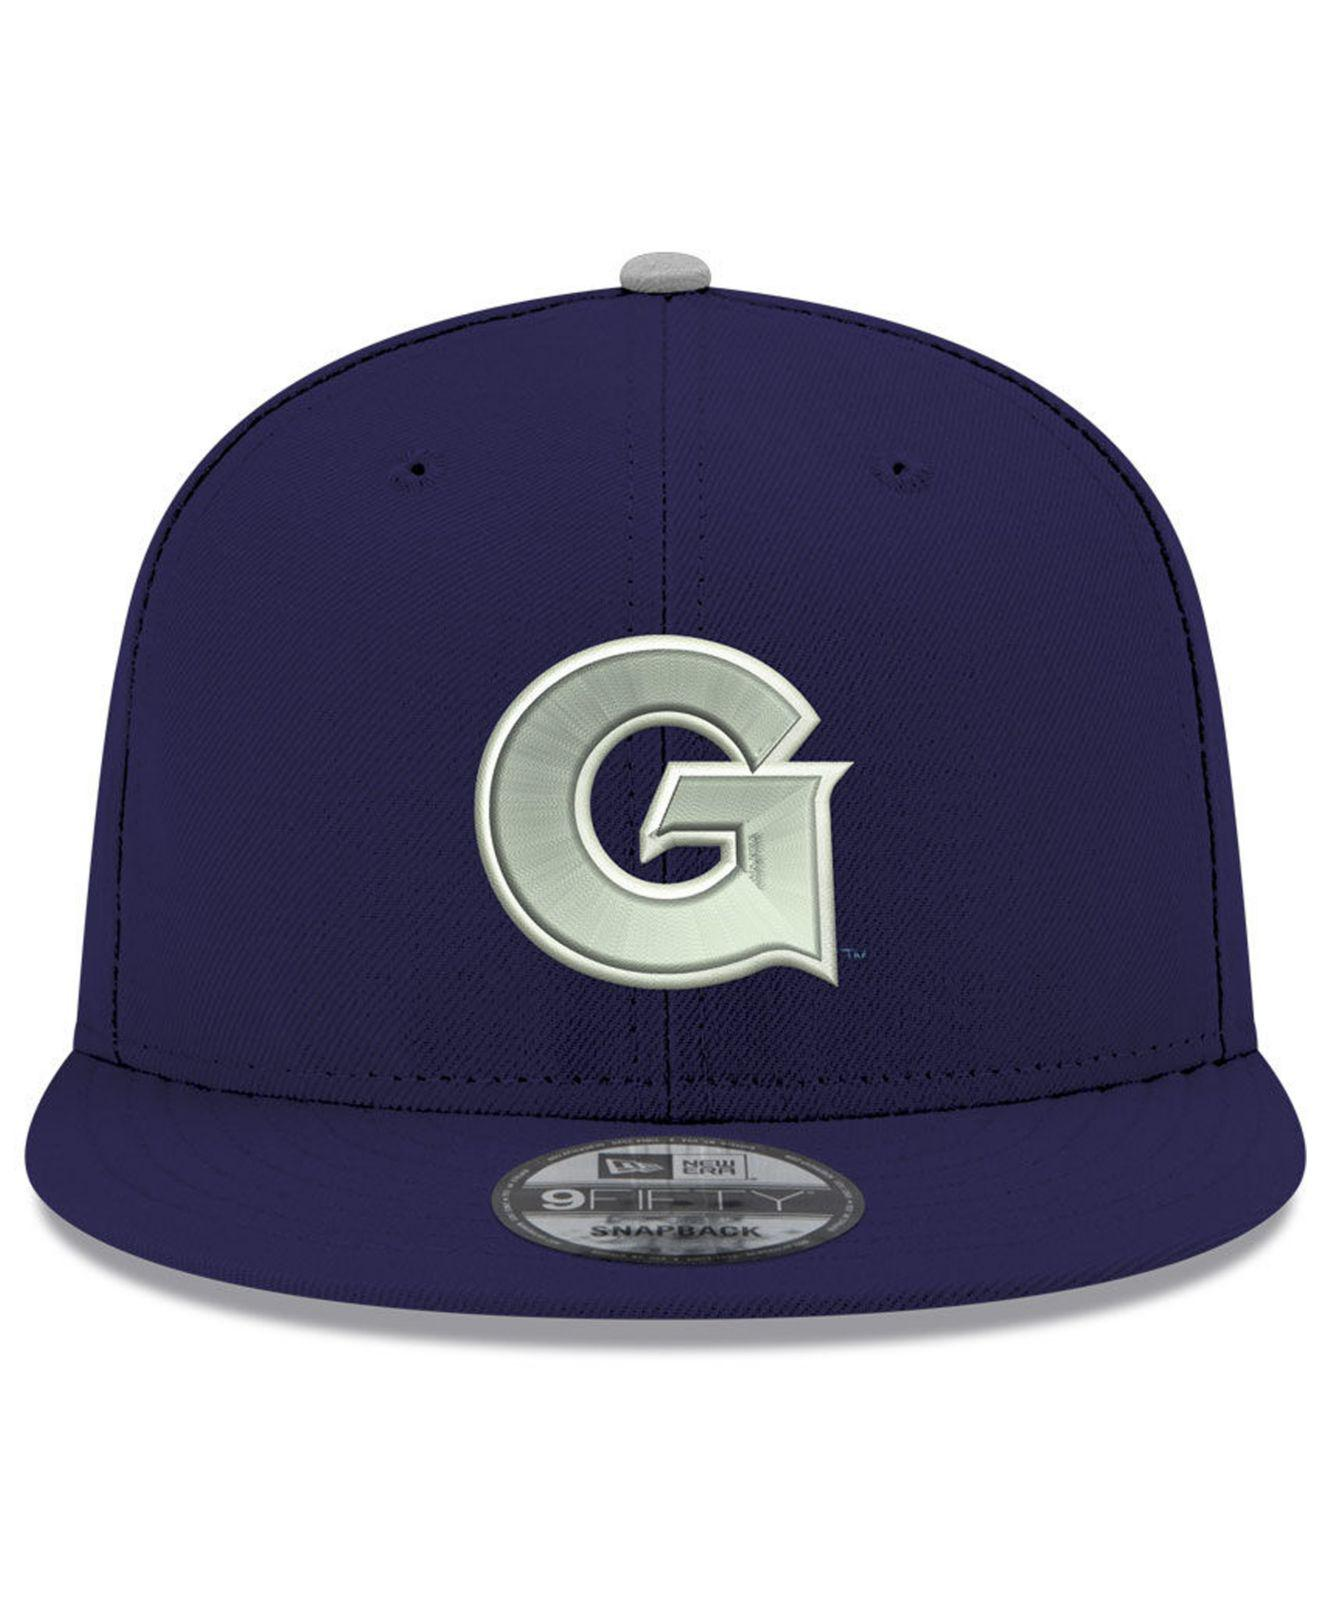 low priced 813c1 2437e Lyst - KTZ Georgetown Hoyas Core 9fifty Snapback Cap in Blue for Men